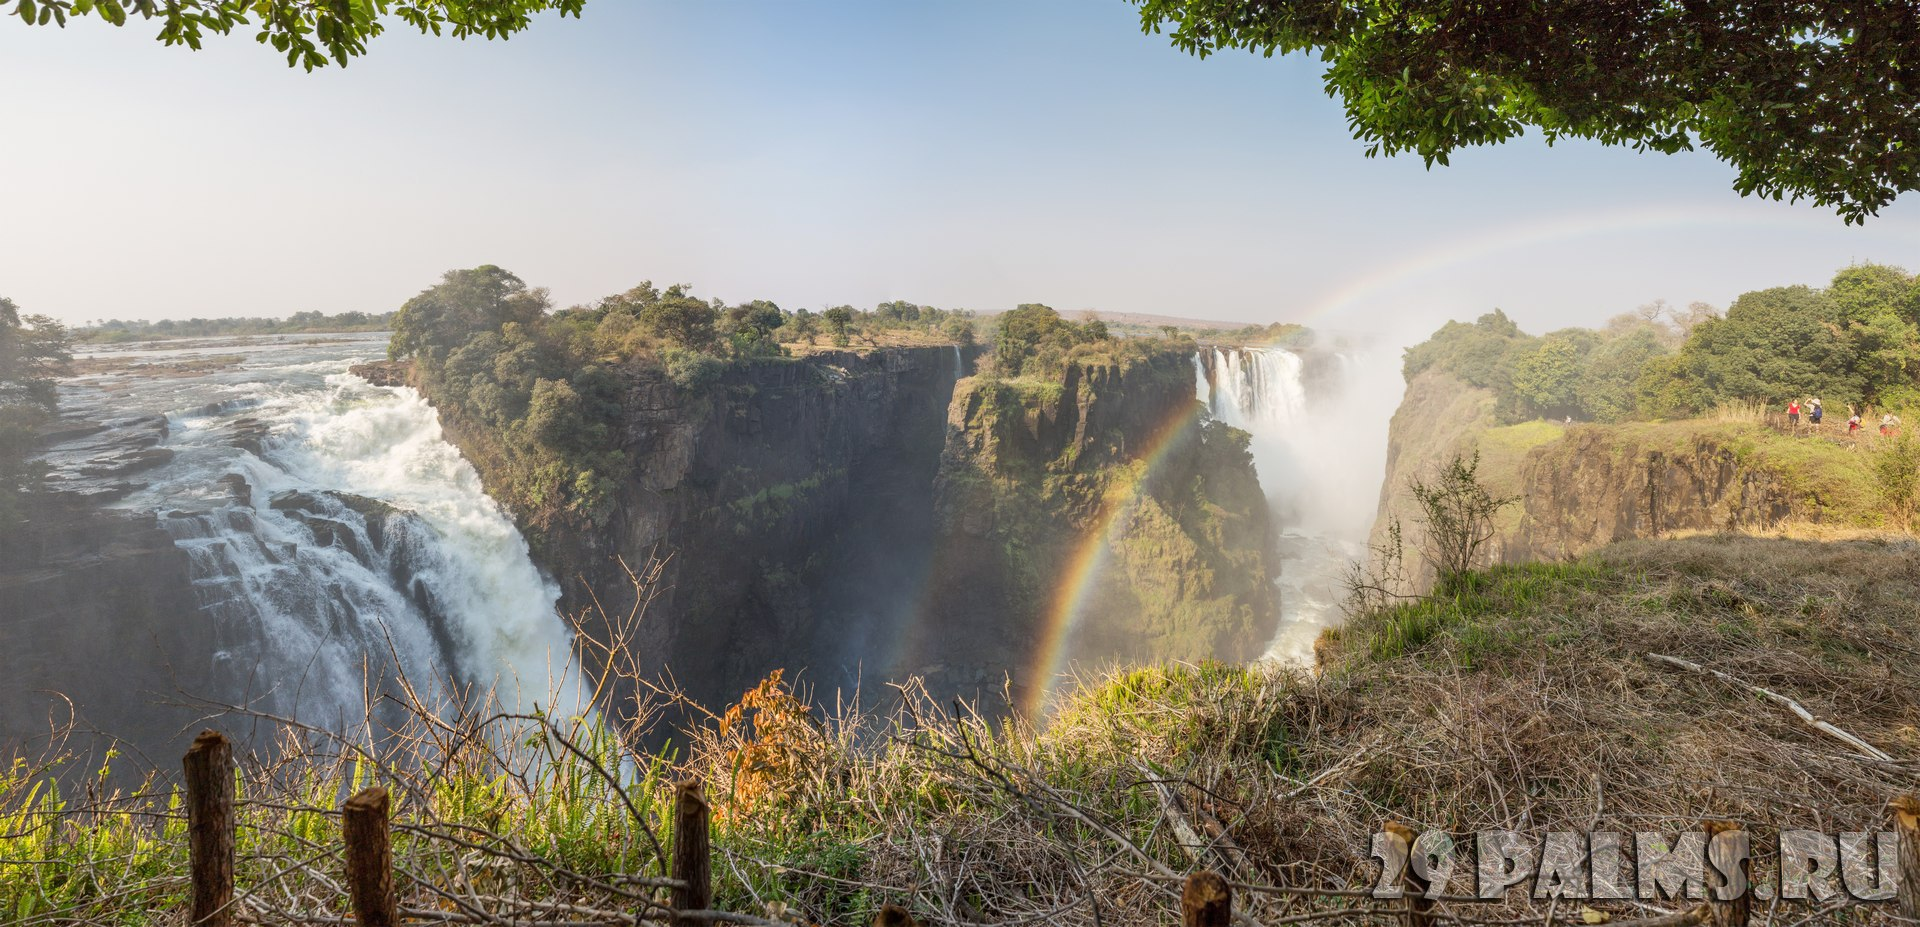 Клуб путешествий Павла Аксенова. Водопад Виктория (Замбия, Зимбабве). Victoria Falls and rainbow, Zimbabwe side. Фото Saaaaa - Depositphotos